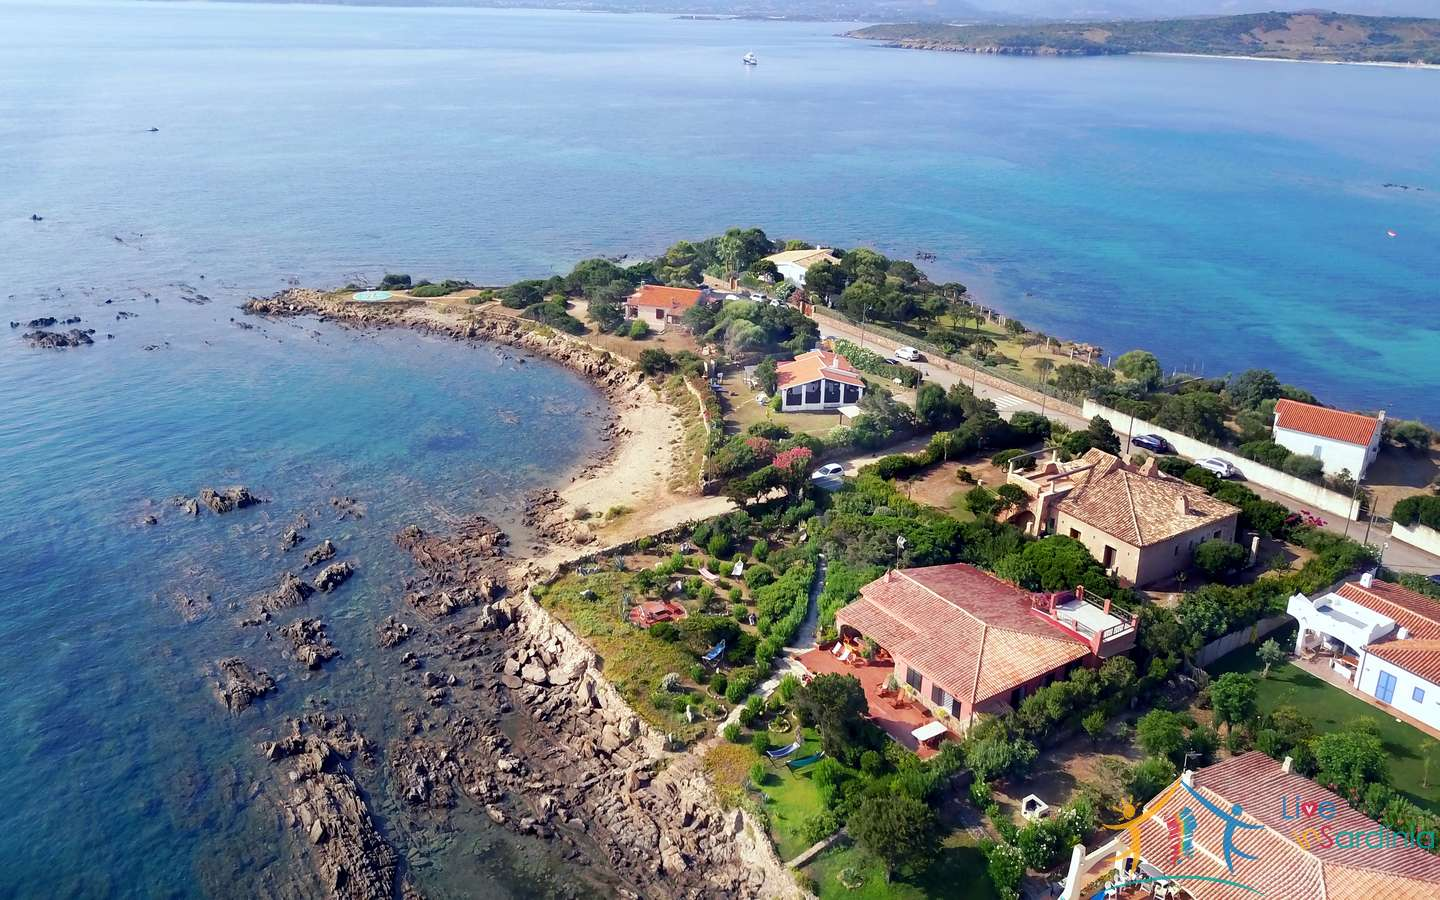 Luxury Villa For Sale In Pittulongu, Exclusive Seafront, North Sardinia